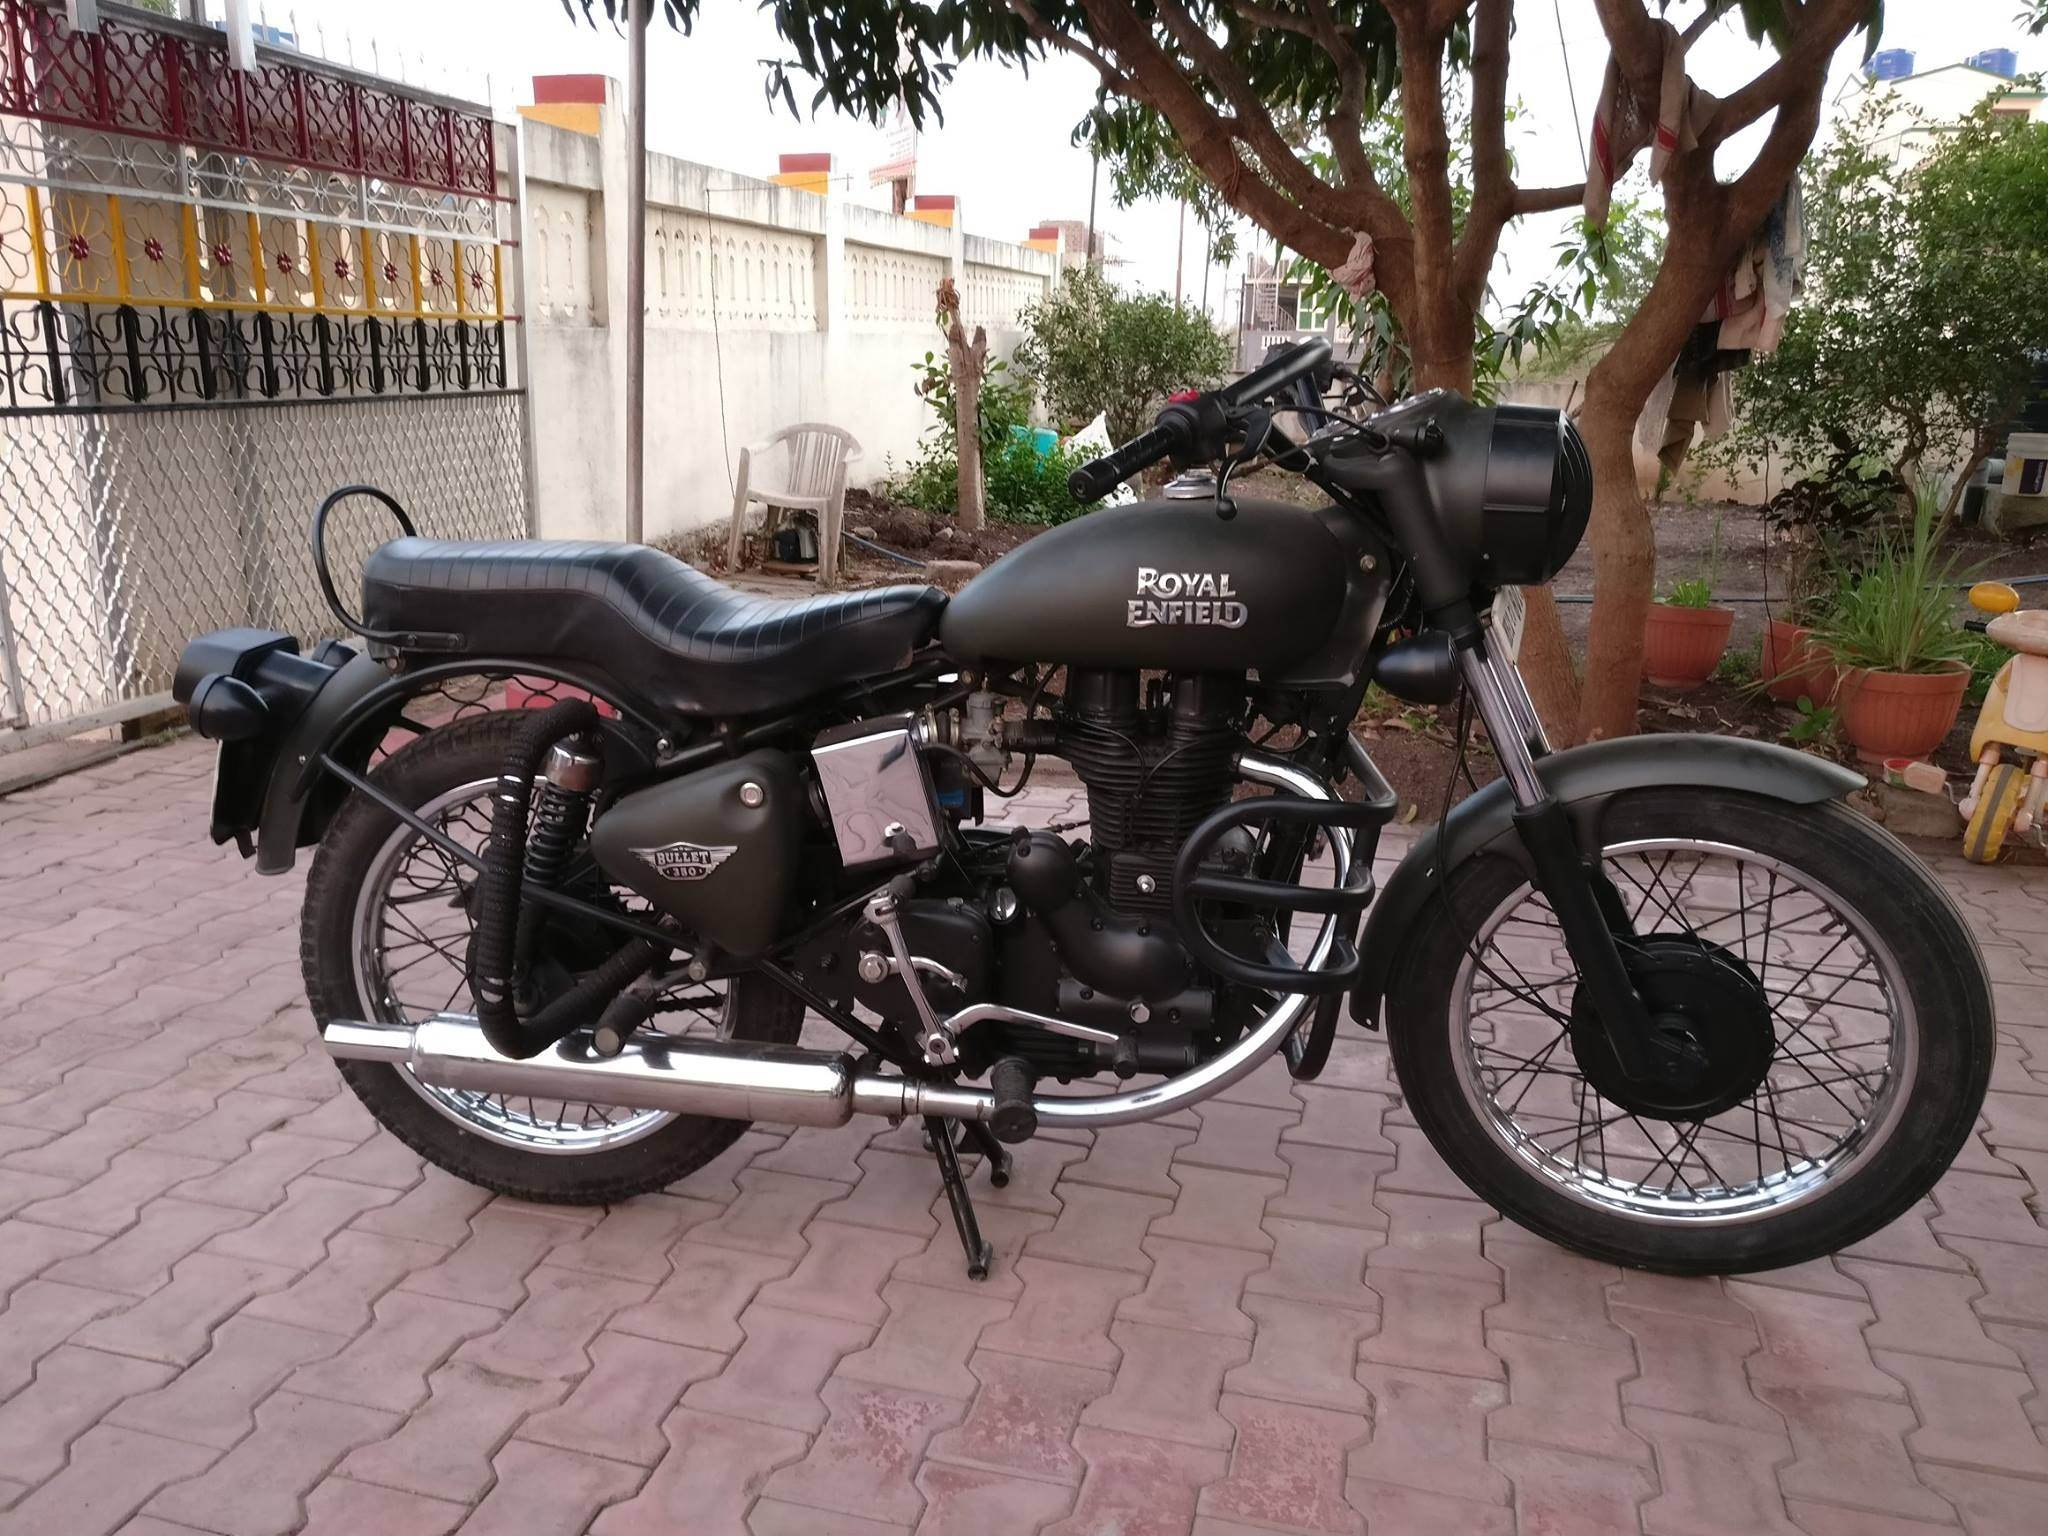 Modified Royal Enfield Electra 350 Images | hobbiesxstyle